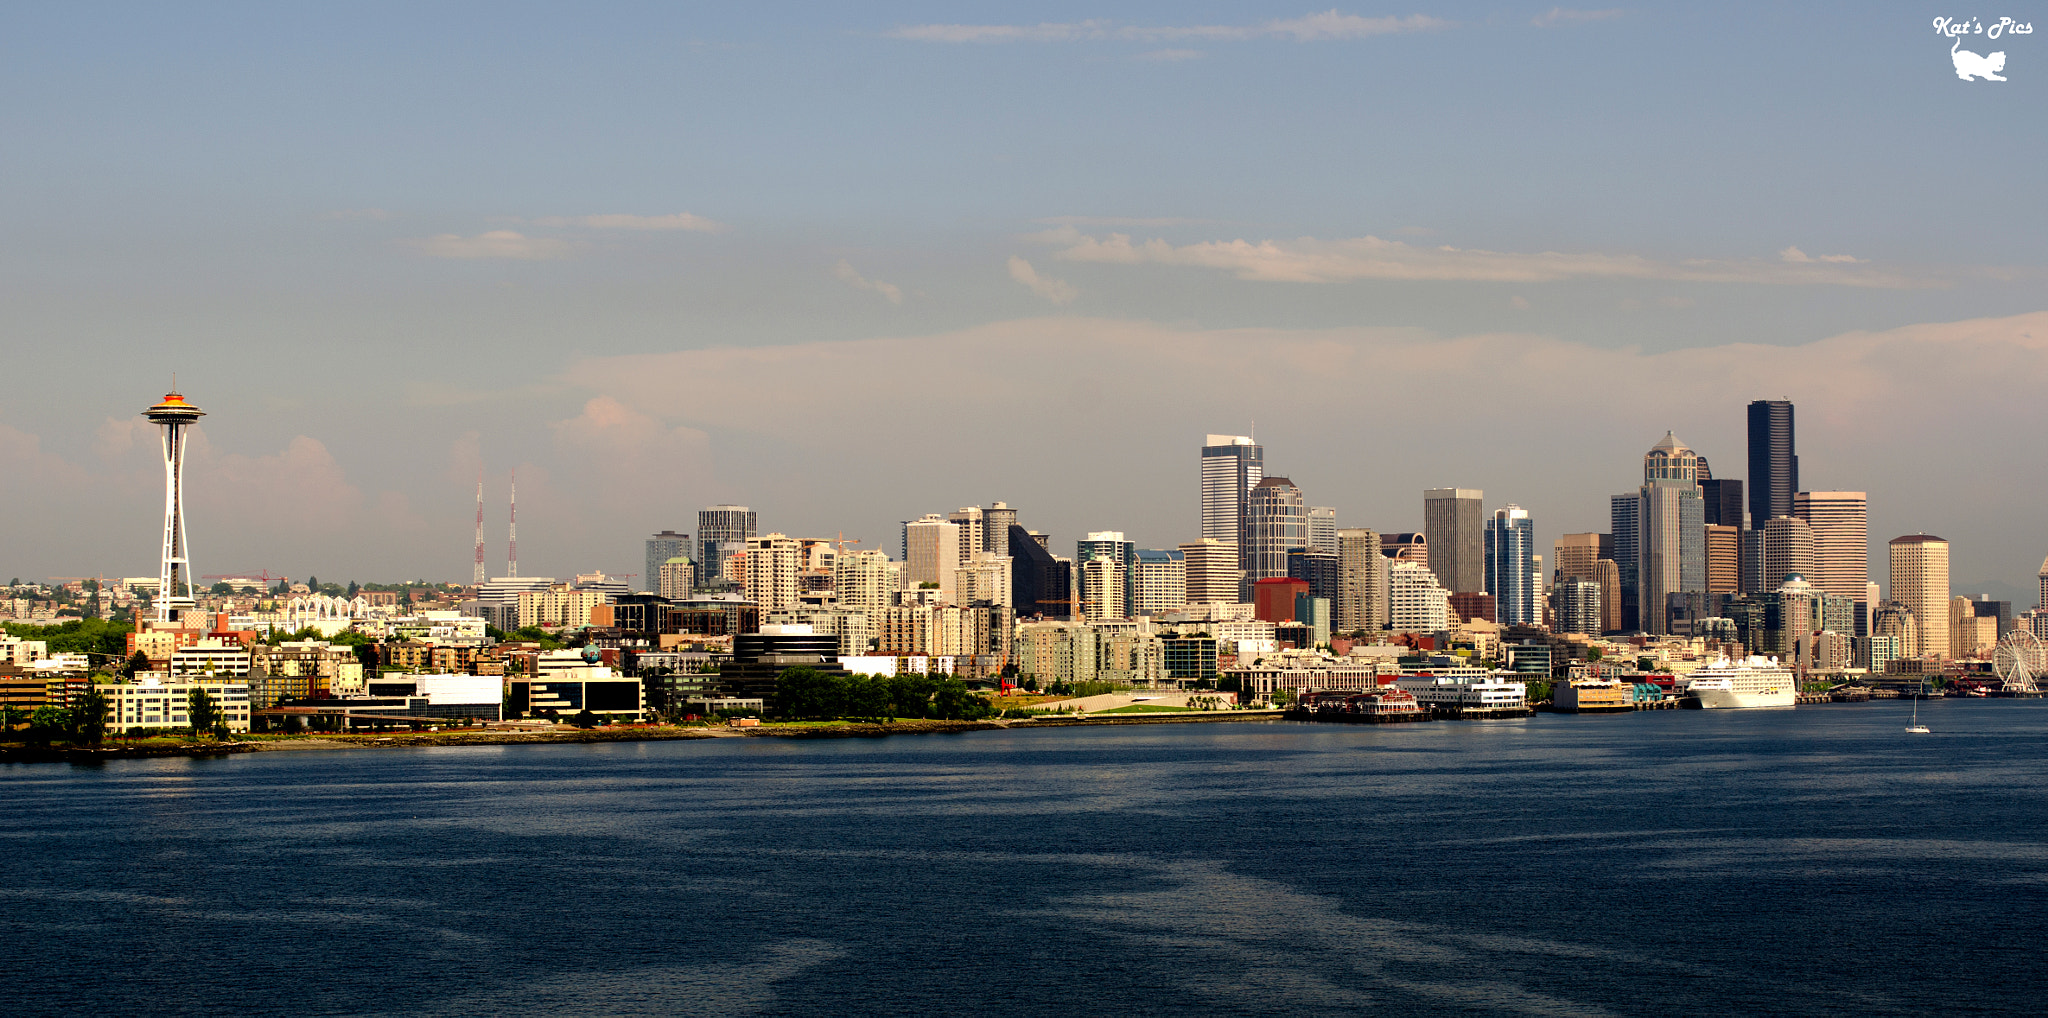 Photograph Another Seattle Skyline by Katheryn Navas on 500px